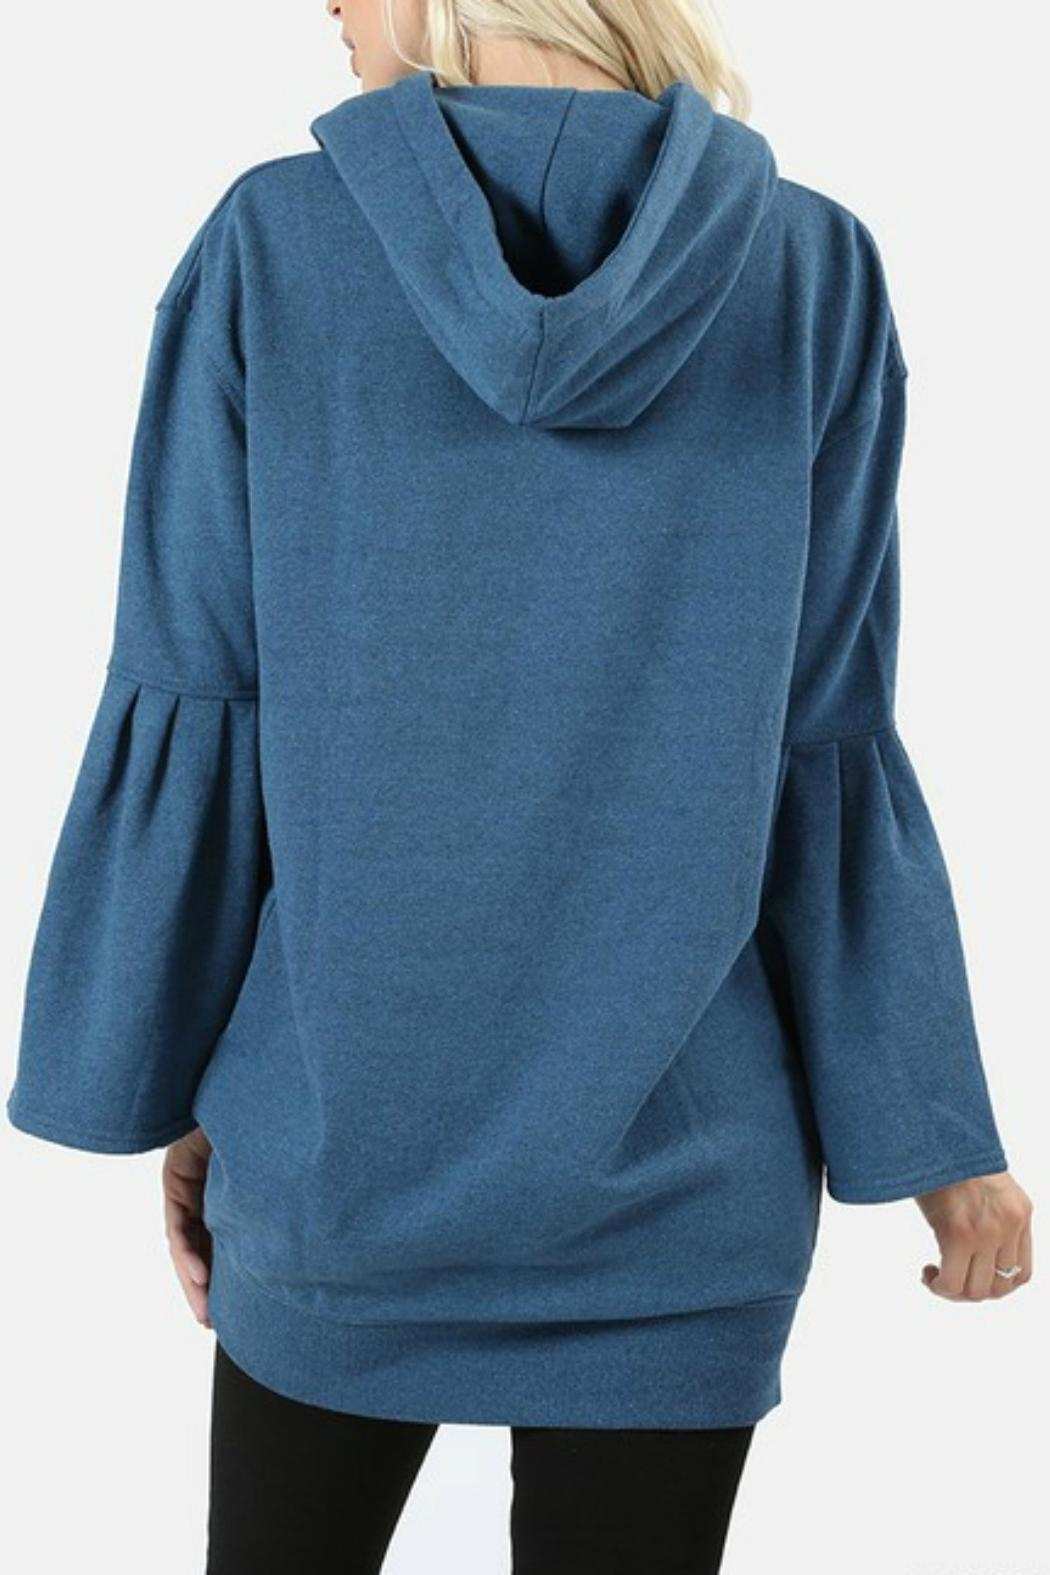 Zenana Outfitters Hooded Ruffle Sweater - Side Cropped Image